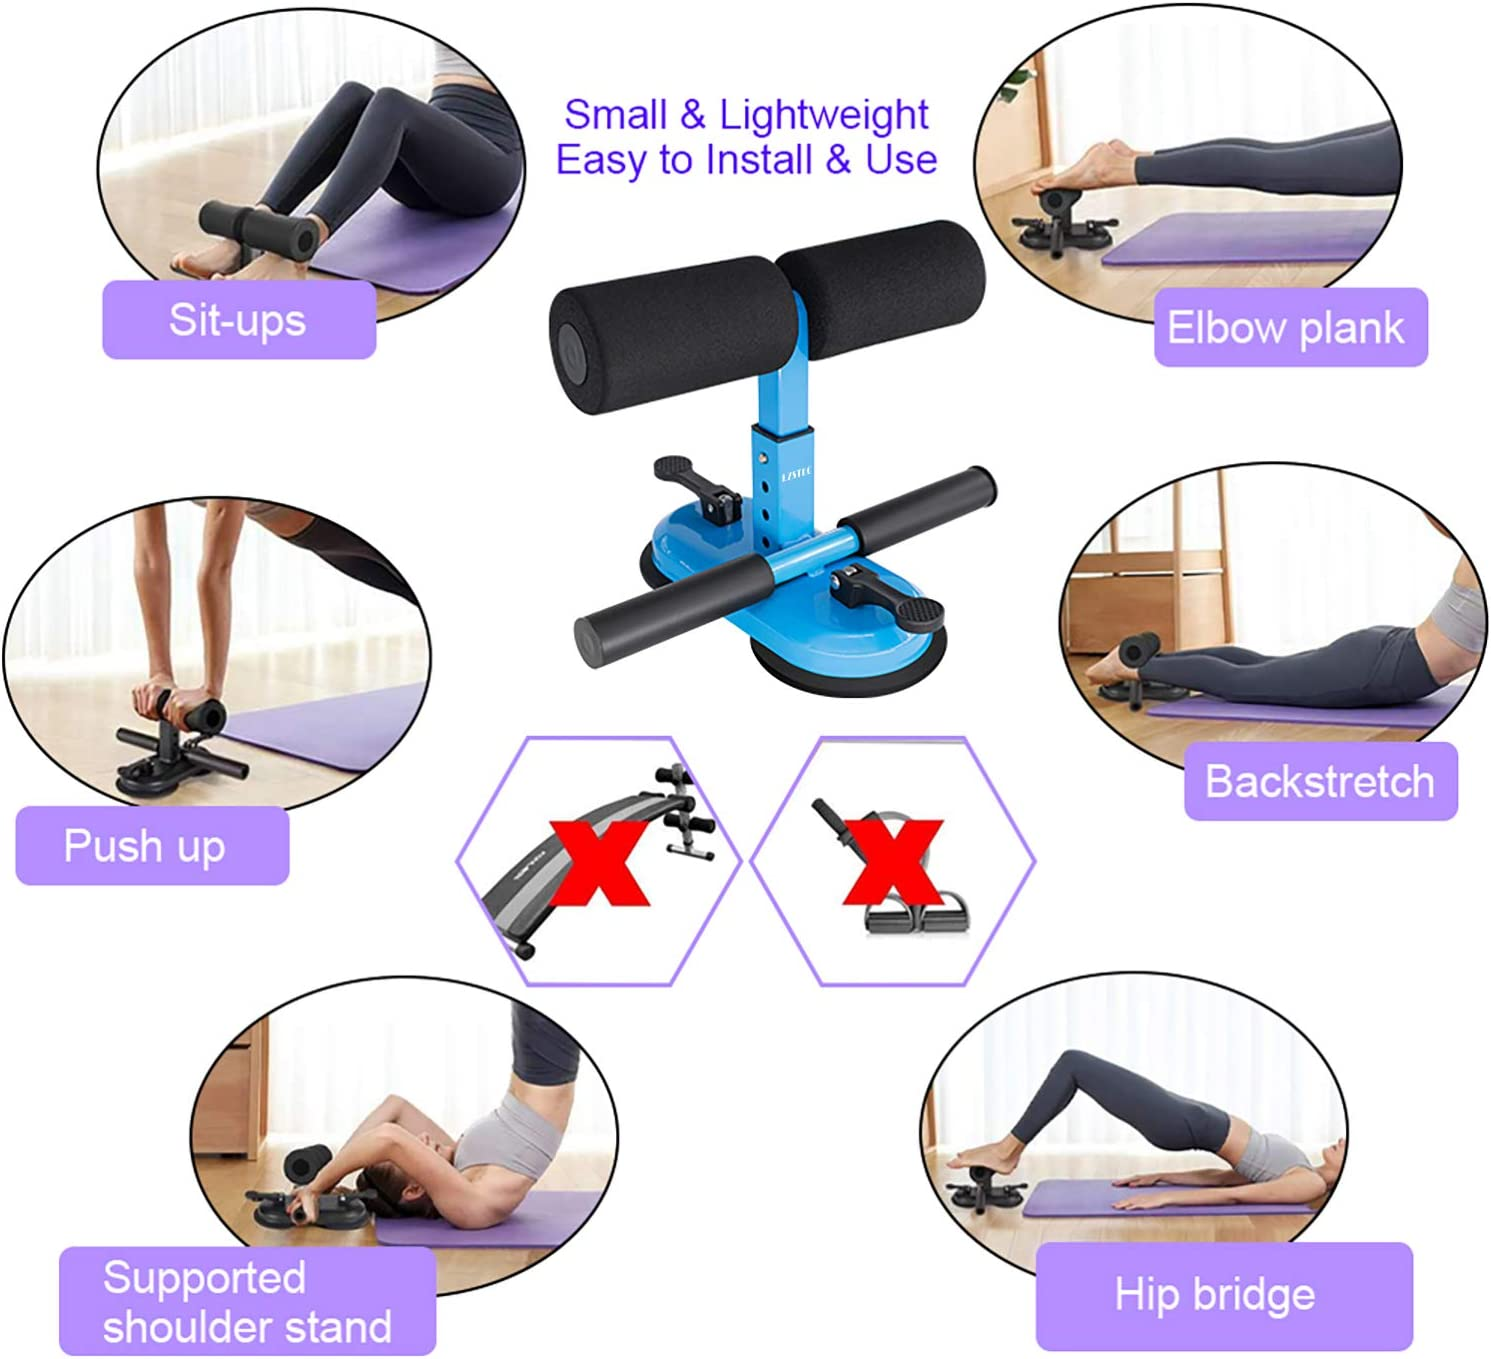 LZSTEC Sit Up Bar for Floor Sit Up Assistant Device Sit-Ups Foot Holder with 2 Self-Suction Cups and 4 Positions Portable and Adjustable Equipment for Abs Home Workouts (Blue) : Sports & Outdoors